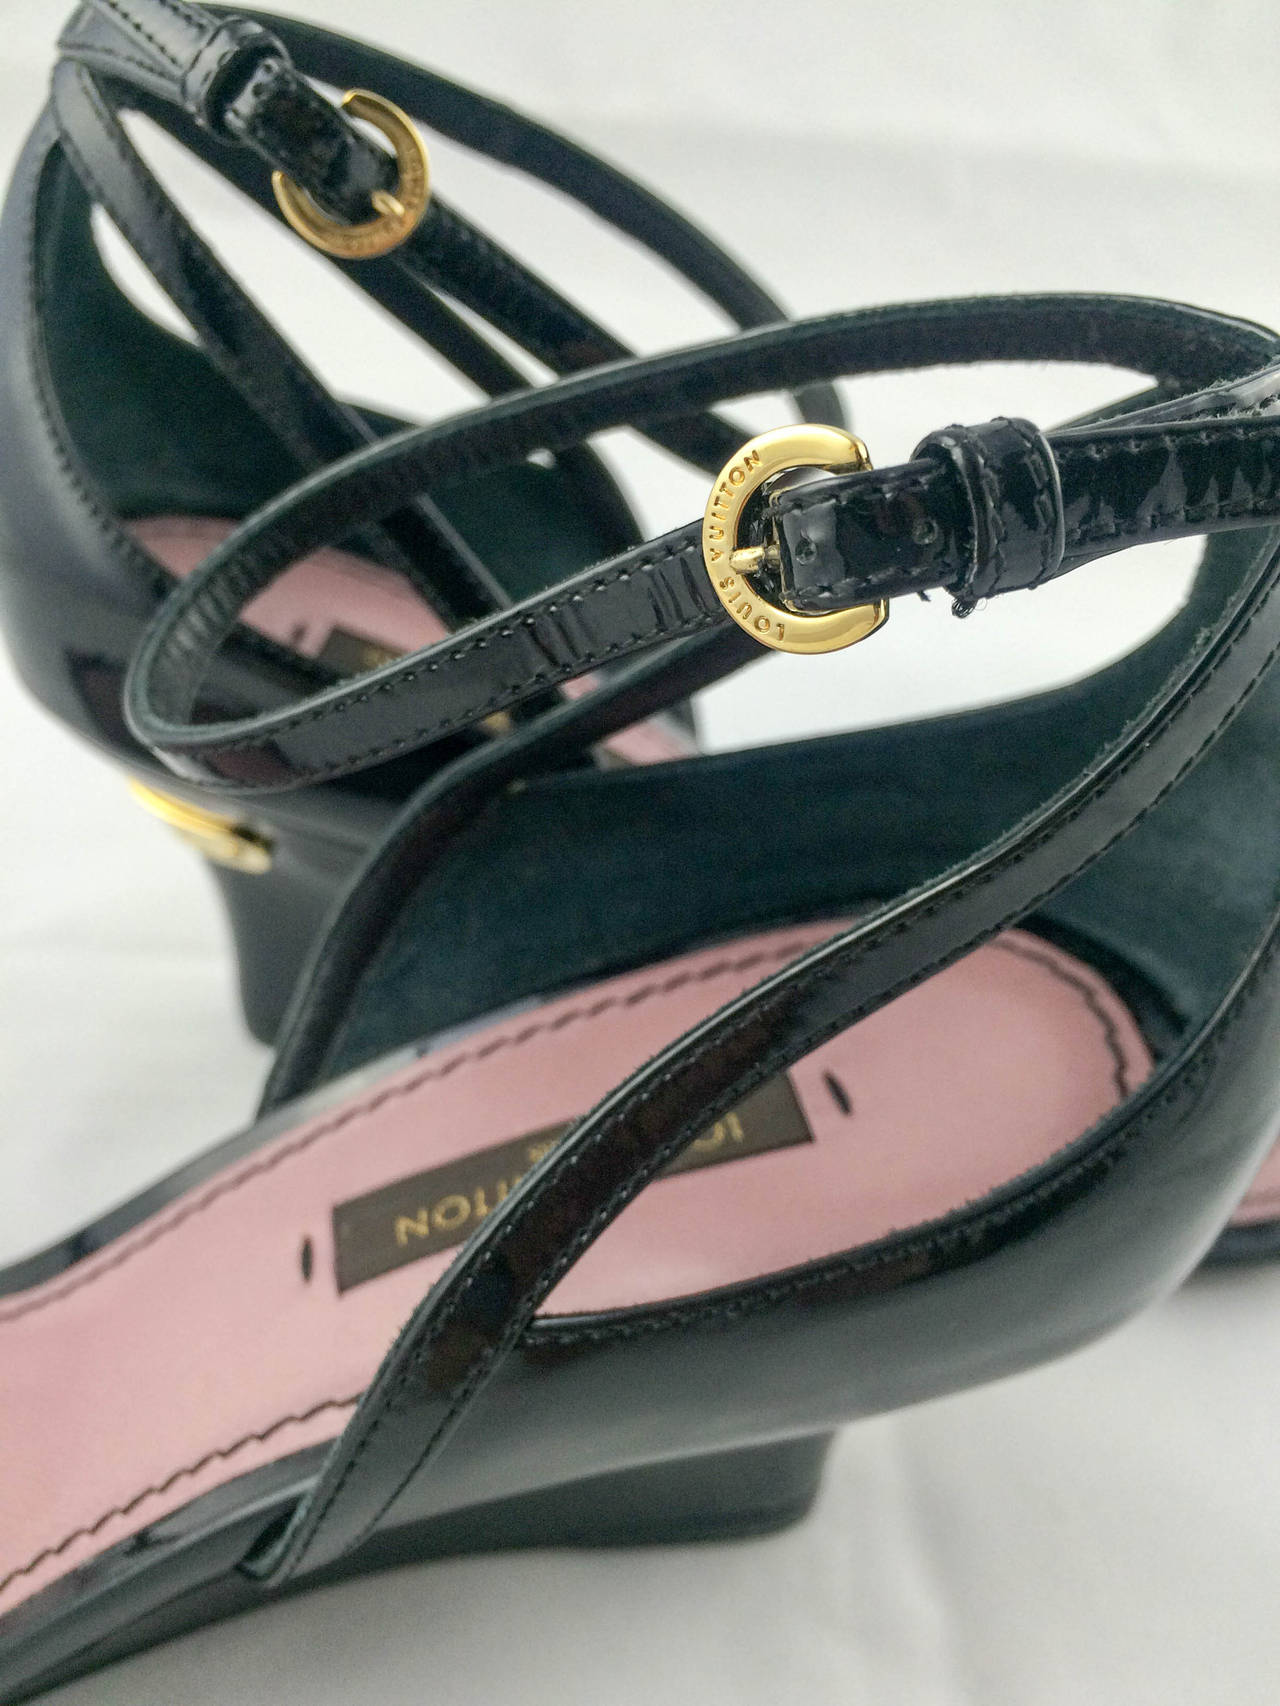 Louis Vuitton Strawberry Wedges Sandals - 2009 For Sale 2